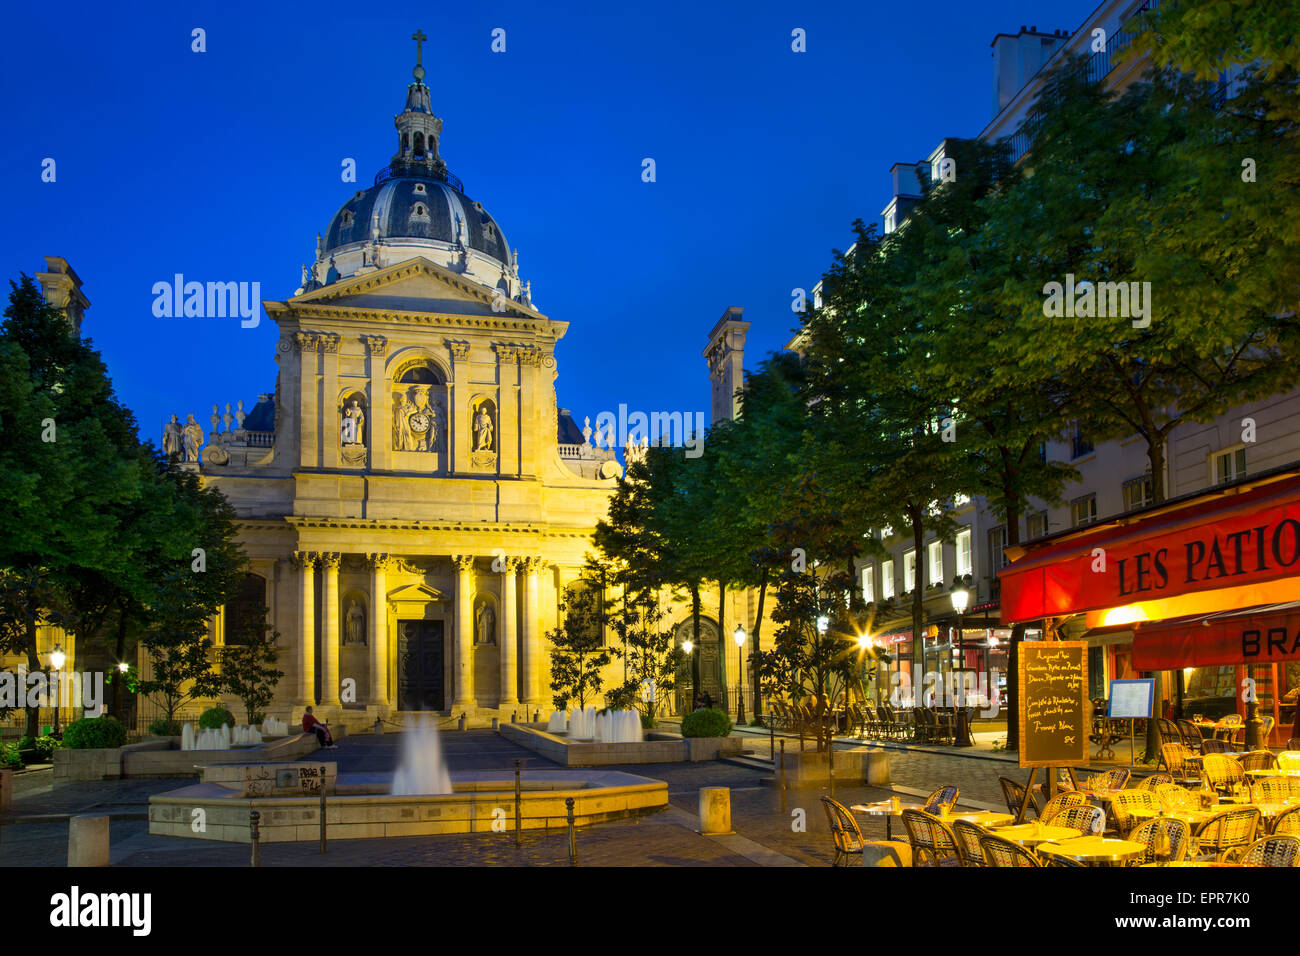 College of Sorbonne, originally a theological school founded in 1253, now a public university, Paris, France Stock Photo